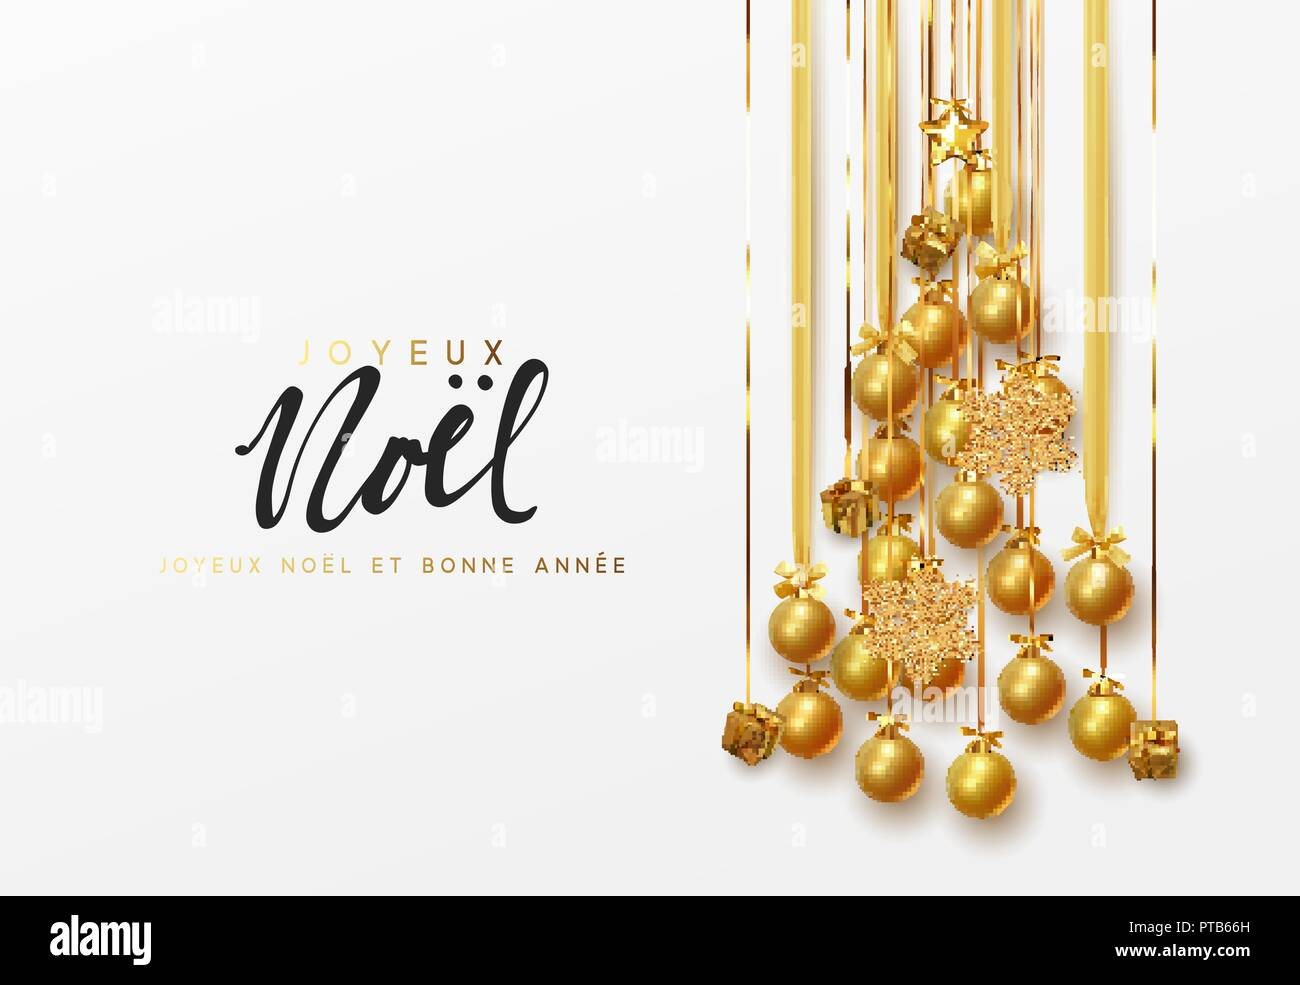 French lettering Joyeux Noel. Christmas greeting cards, banner ...